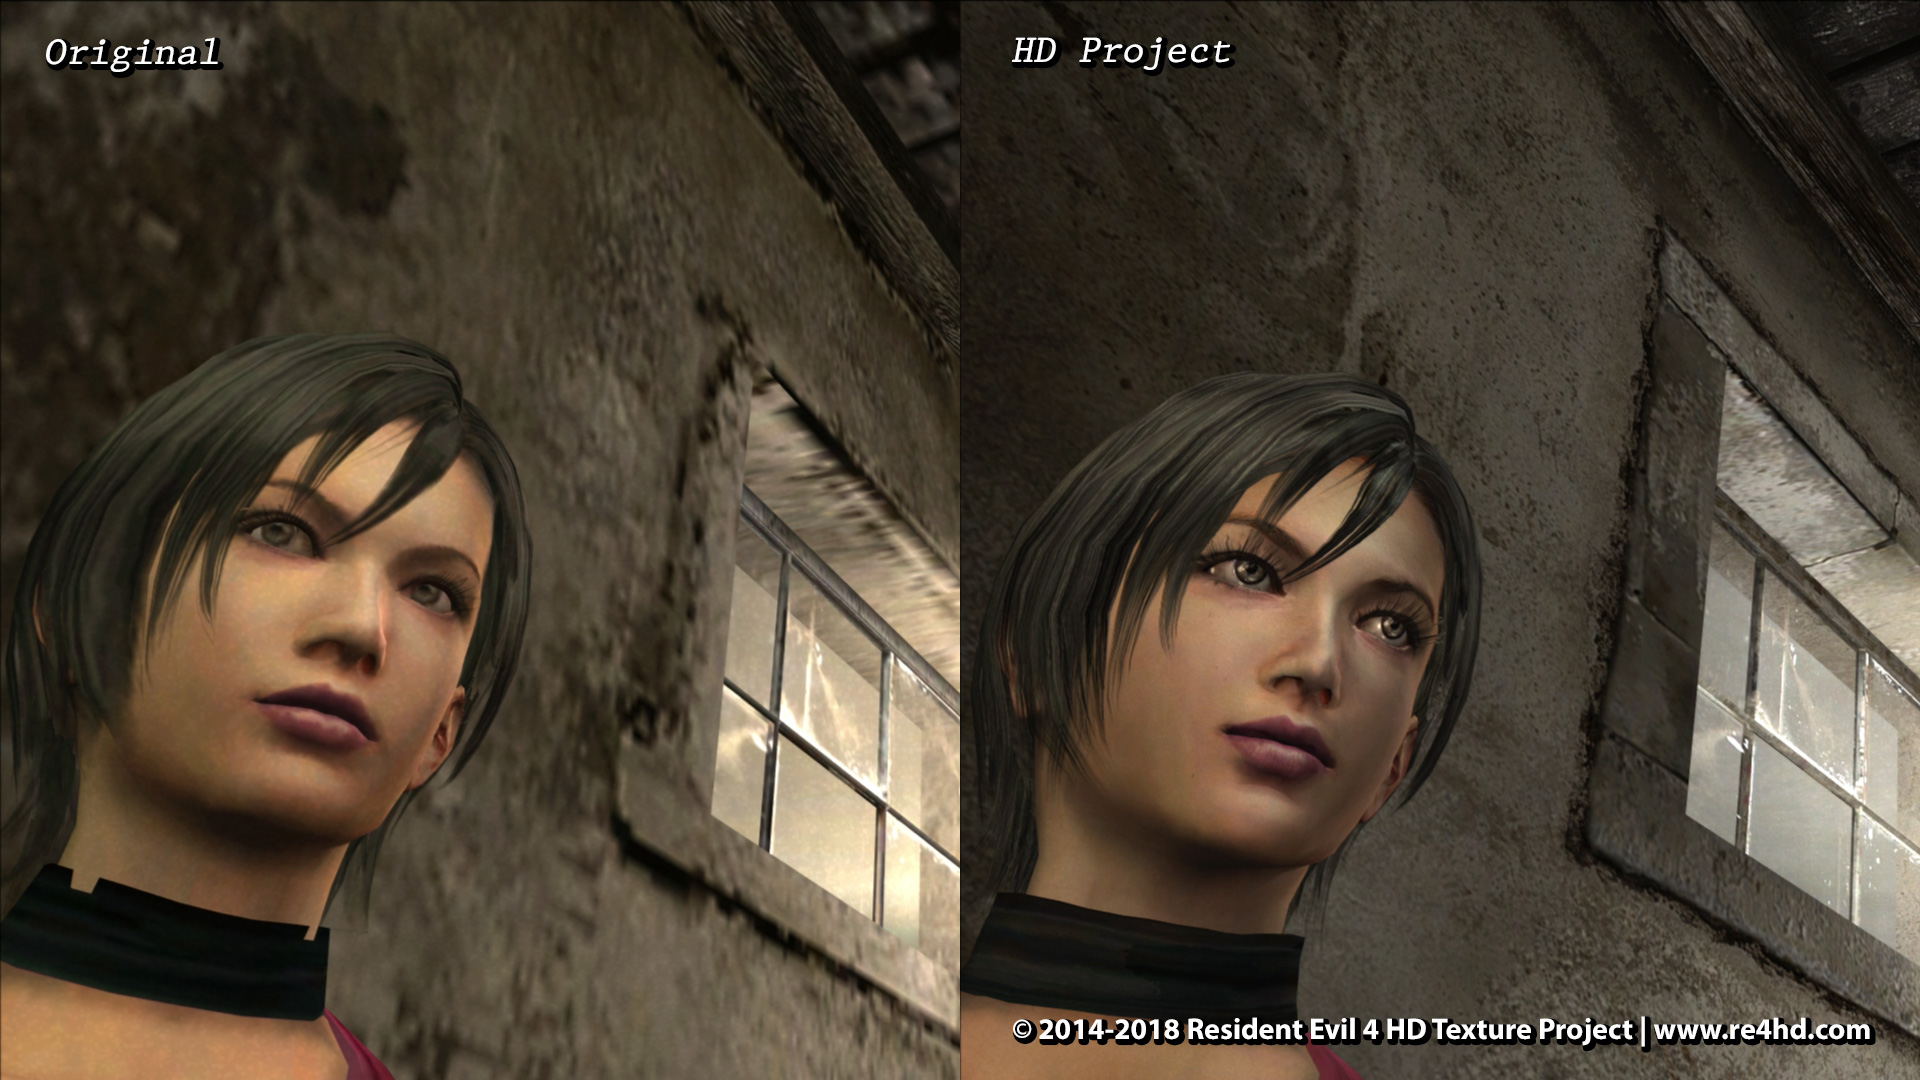 Resident Evil 4 Hd Project New Screenshots Showcase